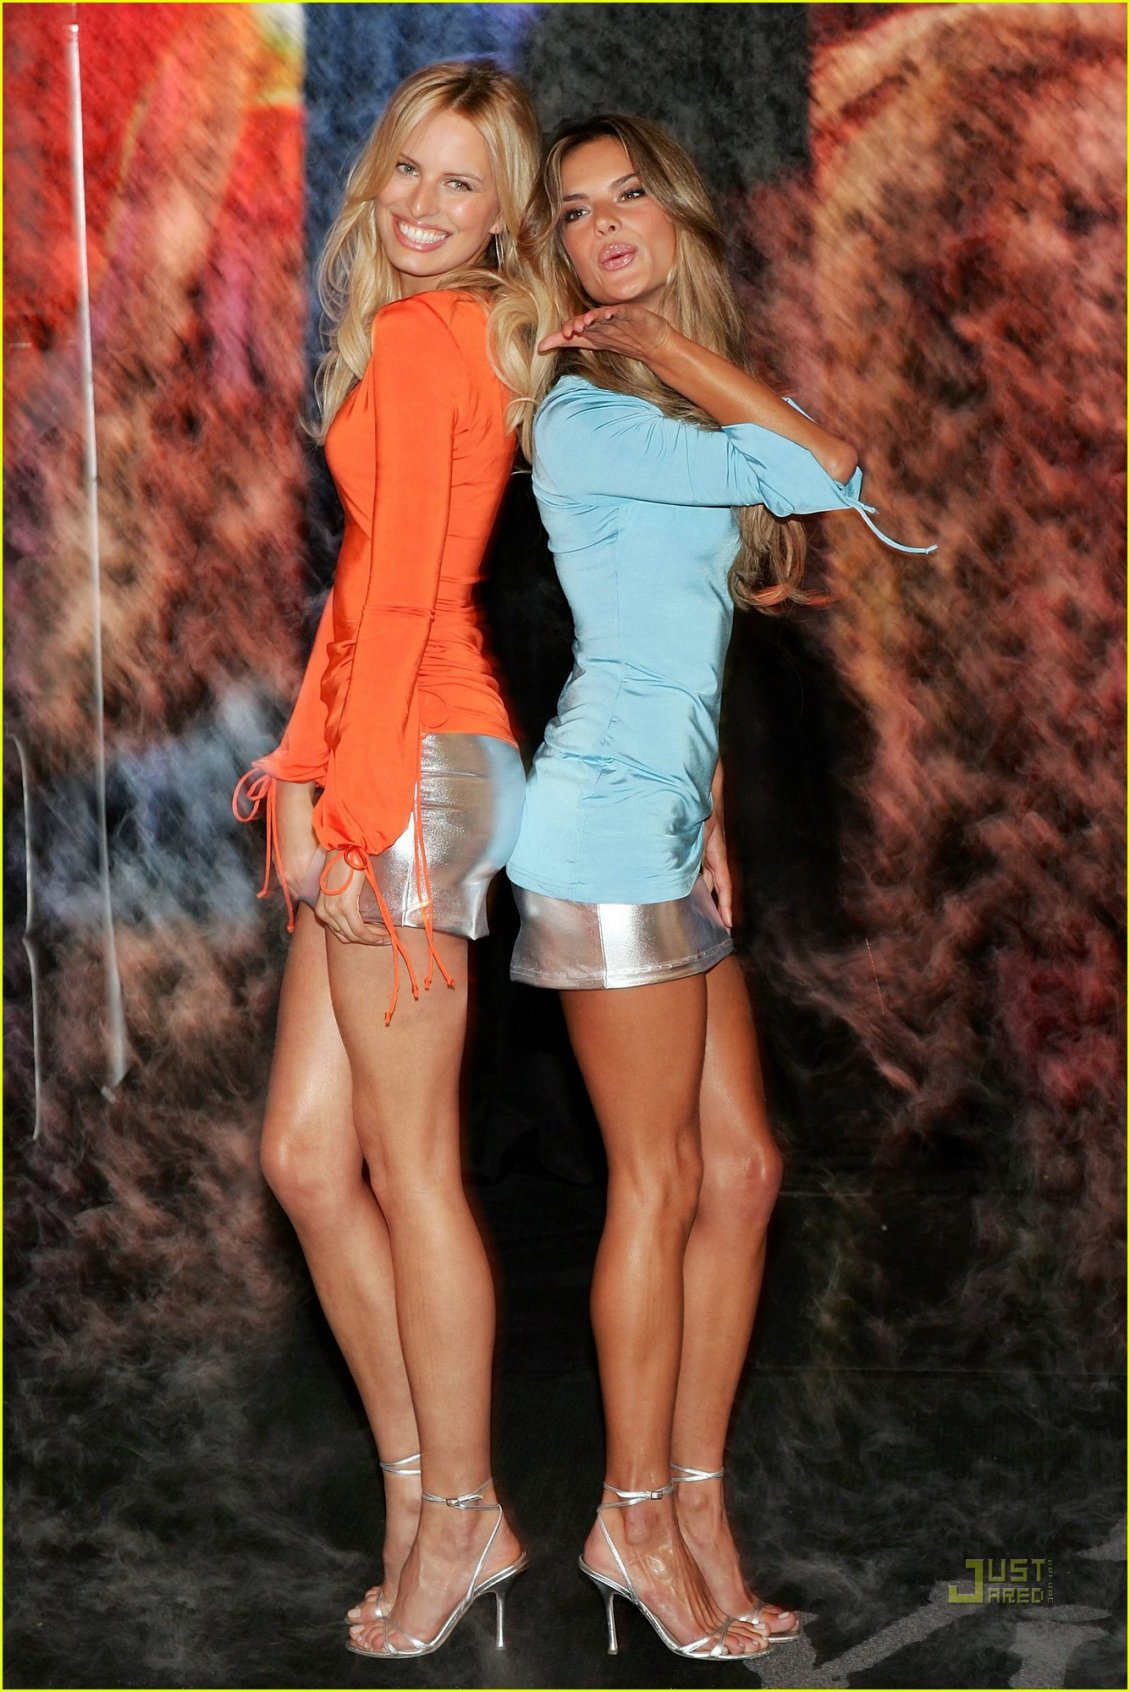 Download Wallpaper Victorias Secret models in blue and orange dress